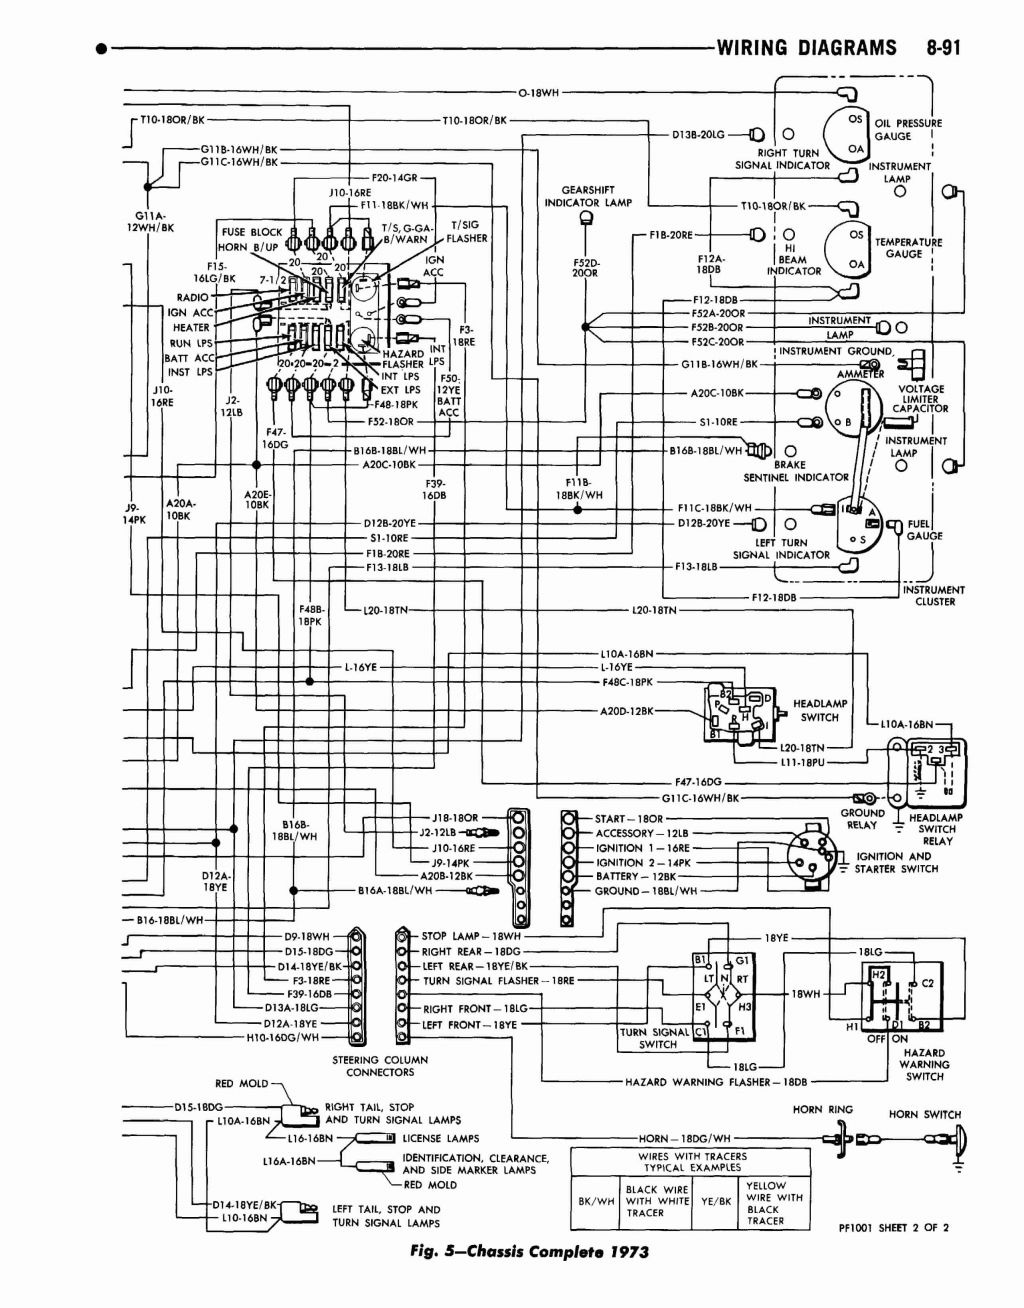 fleetwood rv wiring diagram Download-B16 Wiring Harness Diagram Awesome 1995 Fleetwood Rv Wiring Diagram Wiring Diagram 12-i